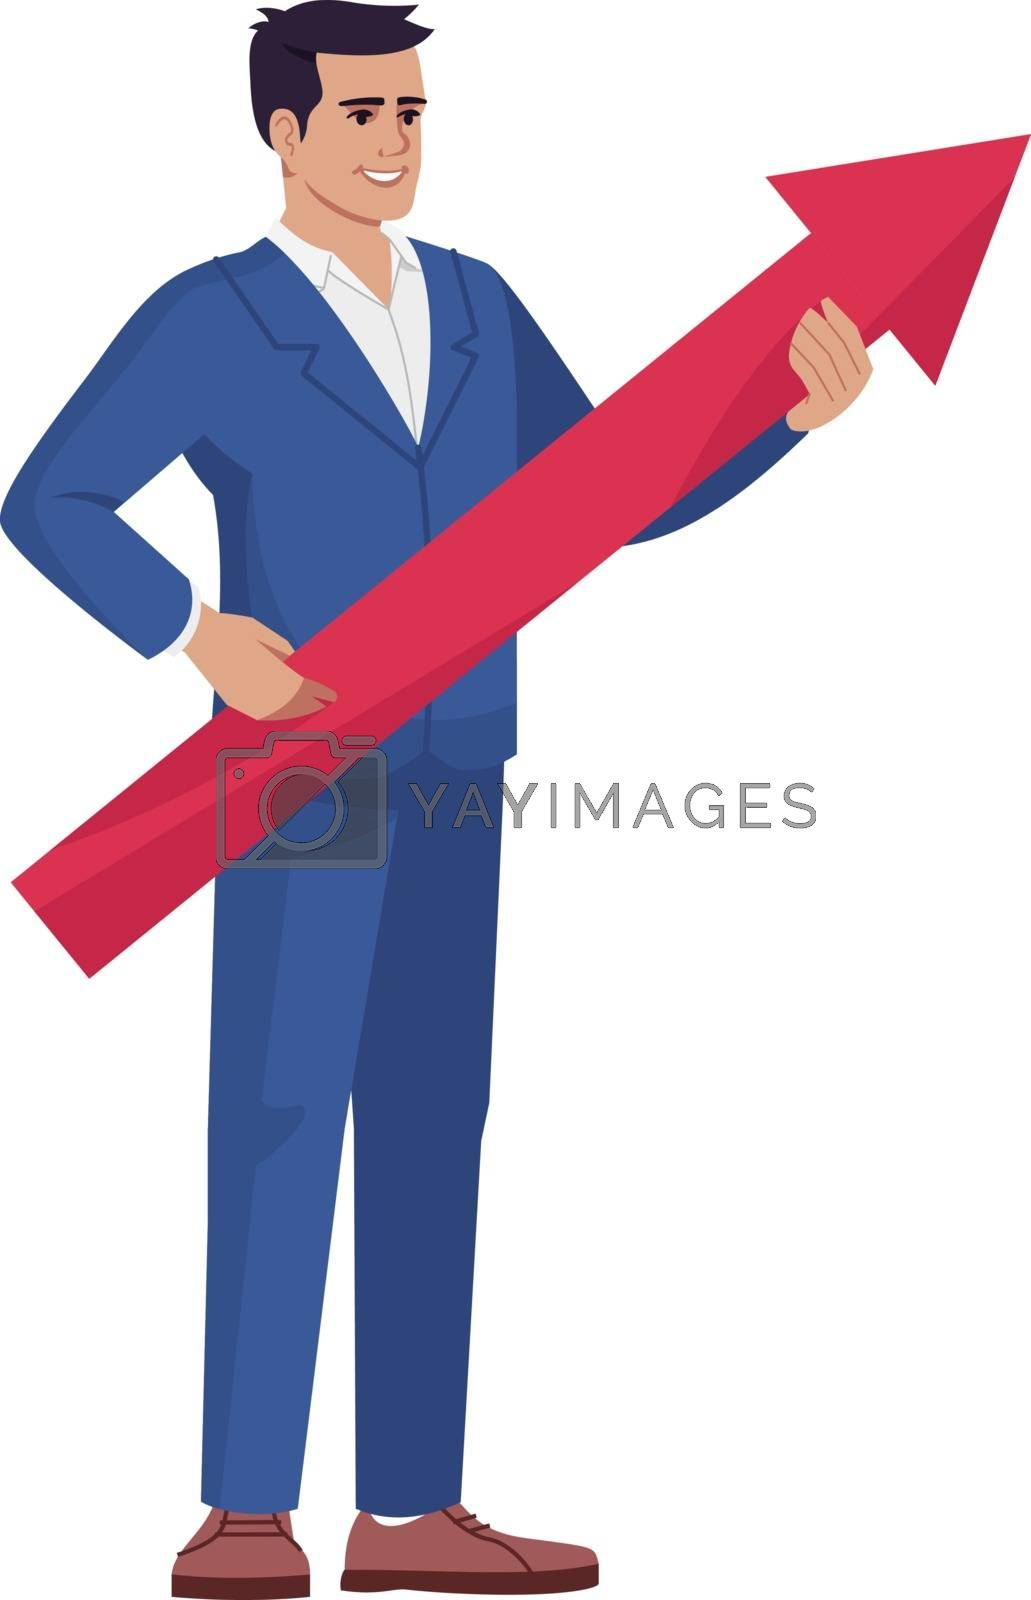 CEO offering company strategy semi flat RGB color vector illustration. Office worker, top manager with arrow isolated cartoon character on white background. Business delevopment vision concept